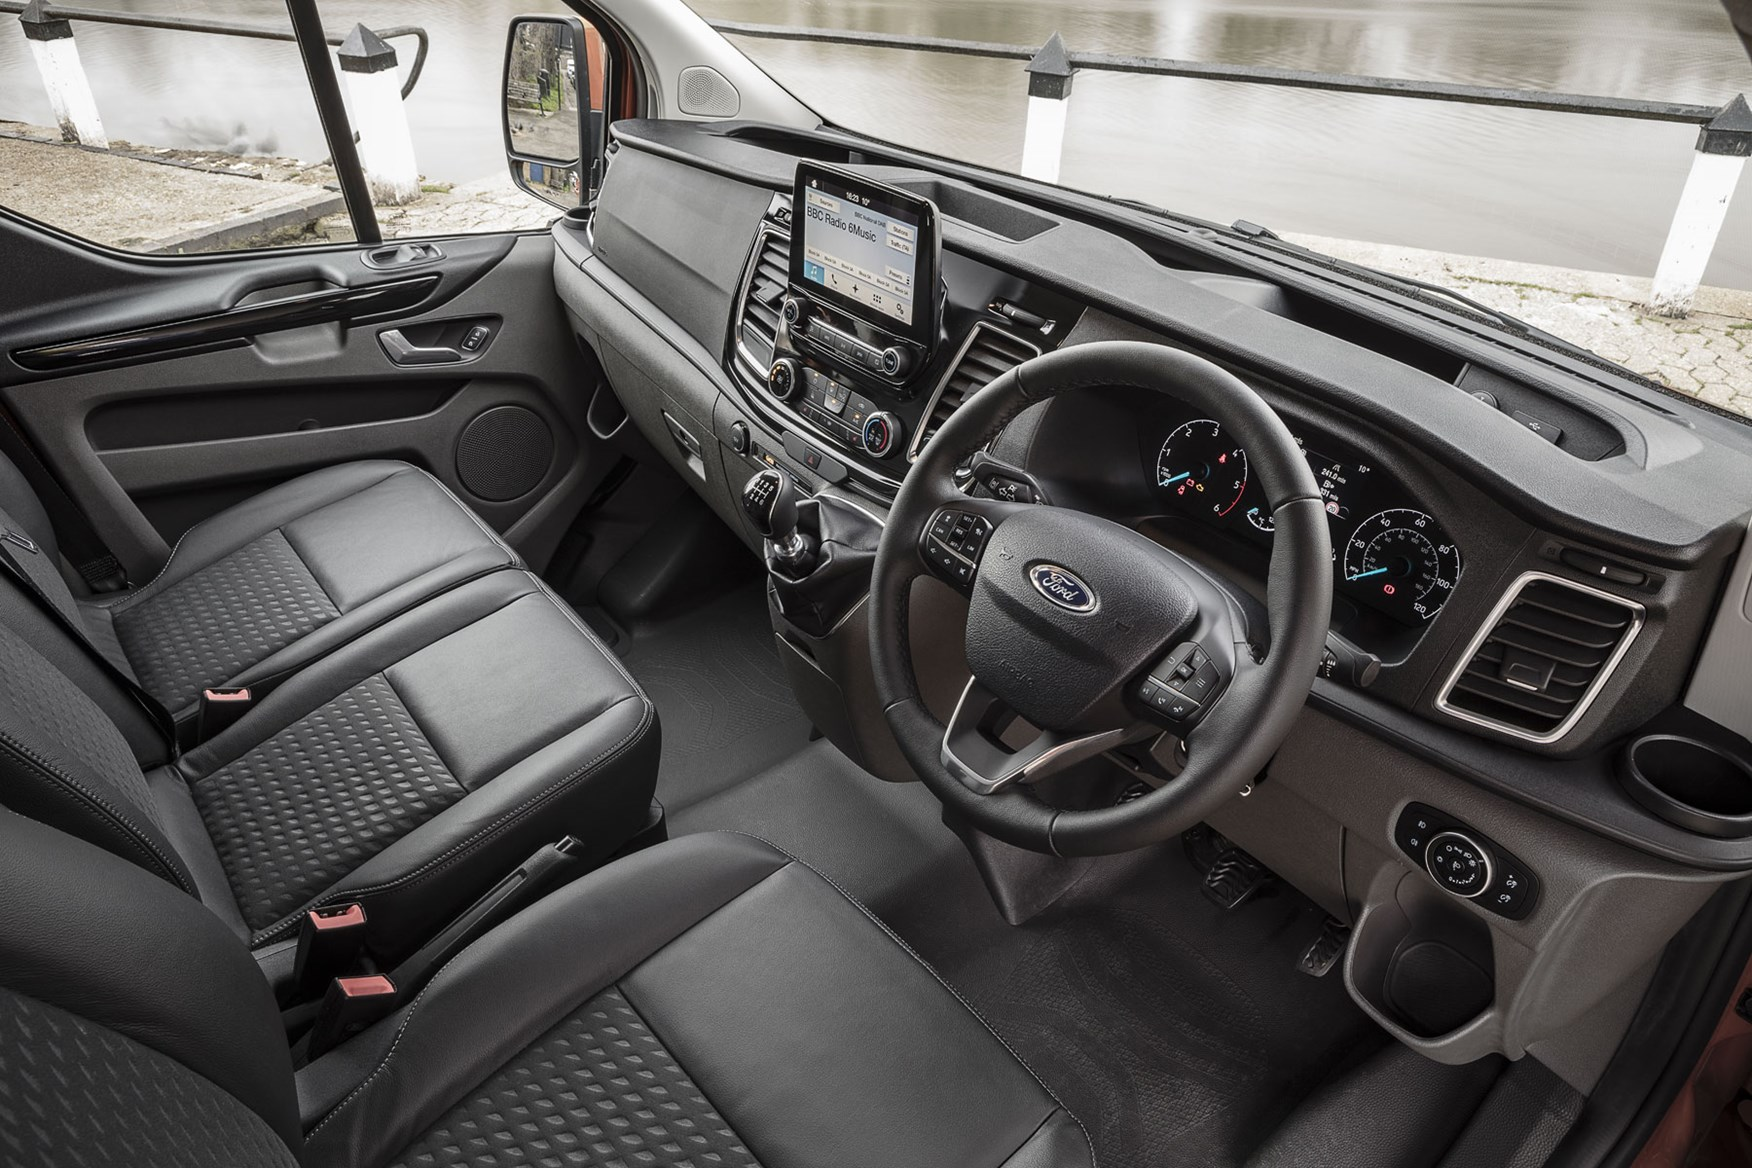 d10cfd55d0a9e8 Ford Transit Custom review - 2018 post-facelift cab interior